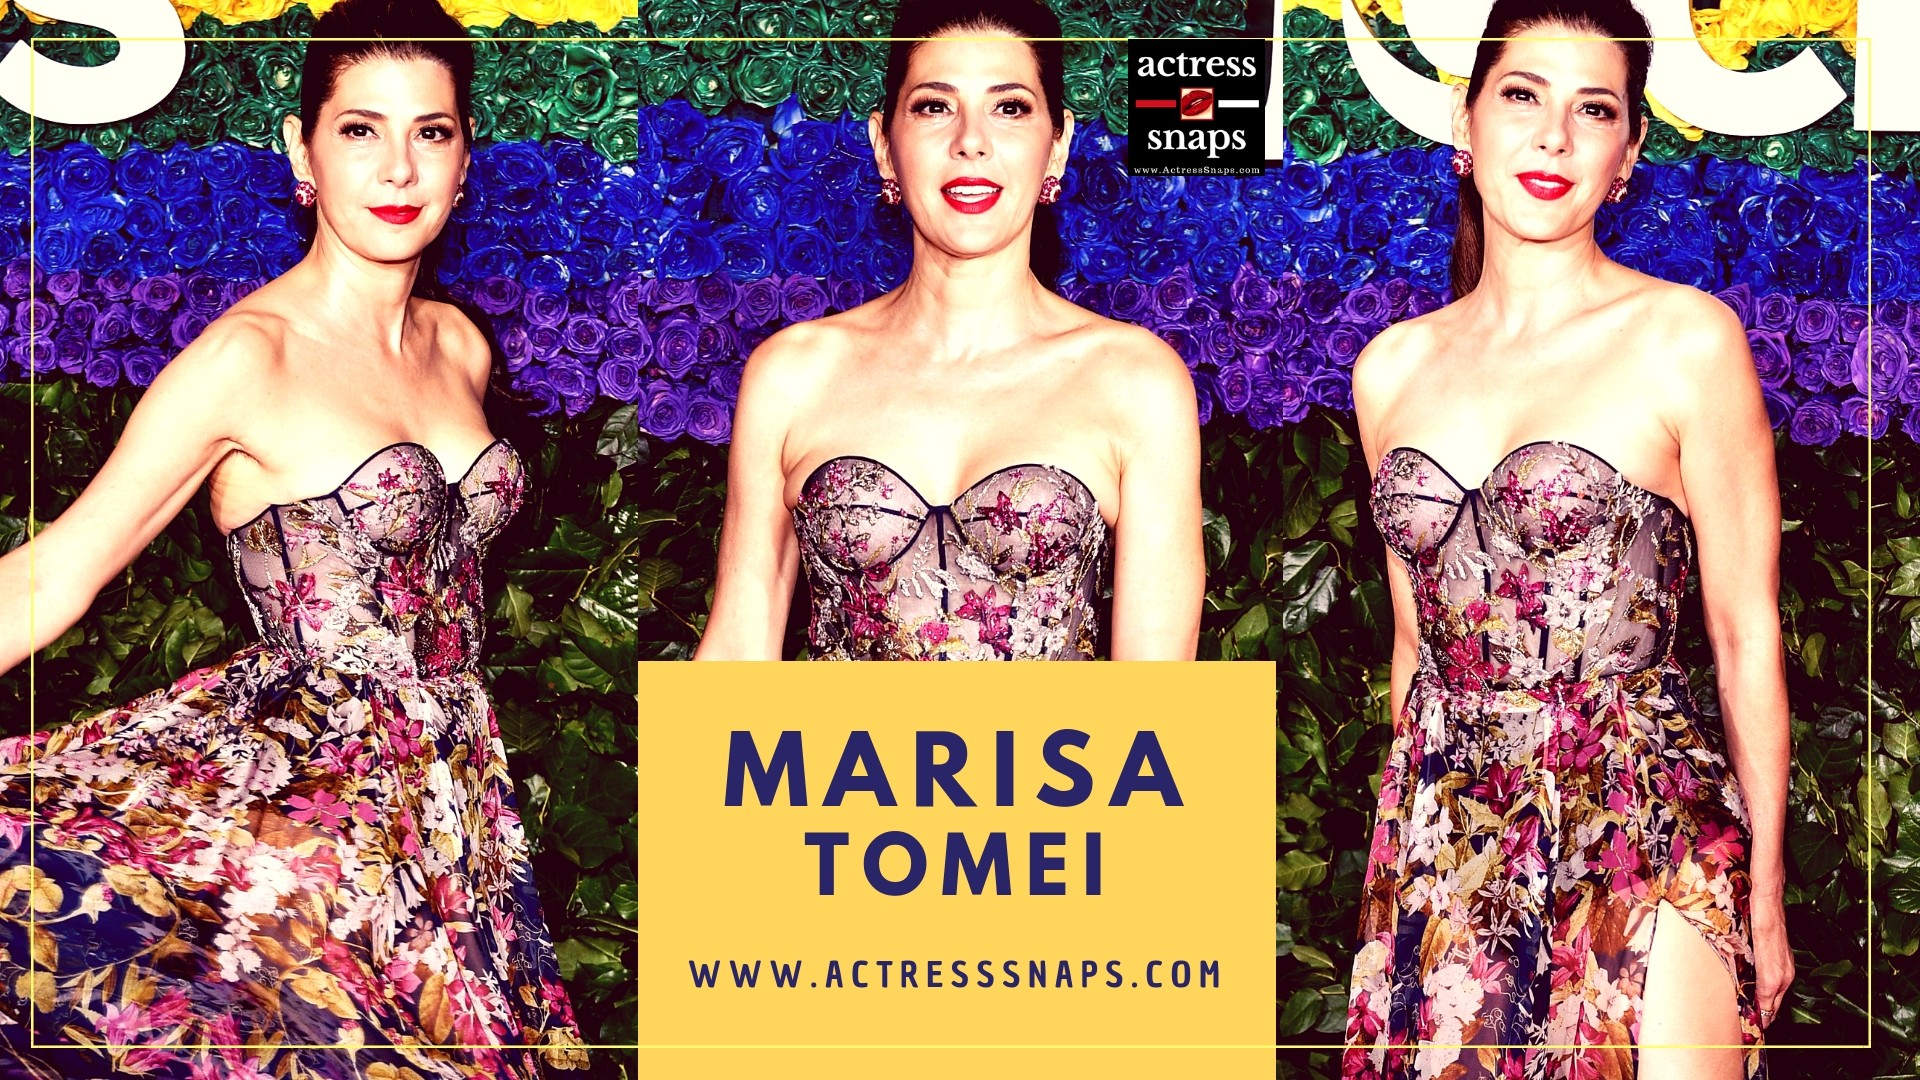 Sexy Marisa Tomei Photos - Sexy Actress Pictures | Hot Actress Pictures - ActressSnaps.com